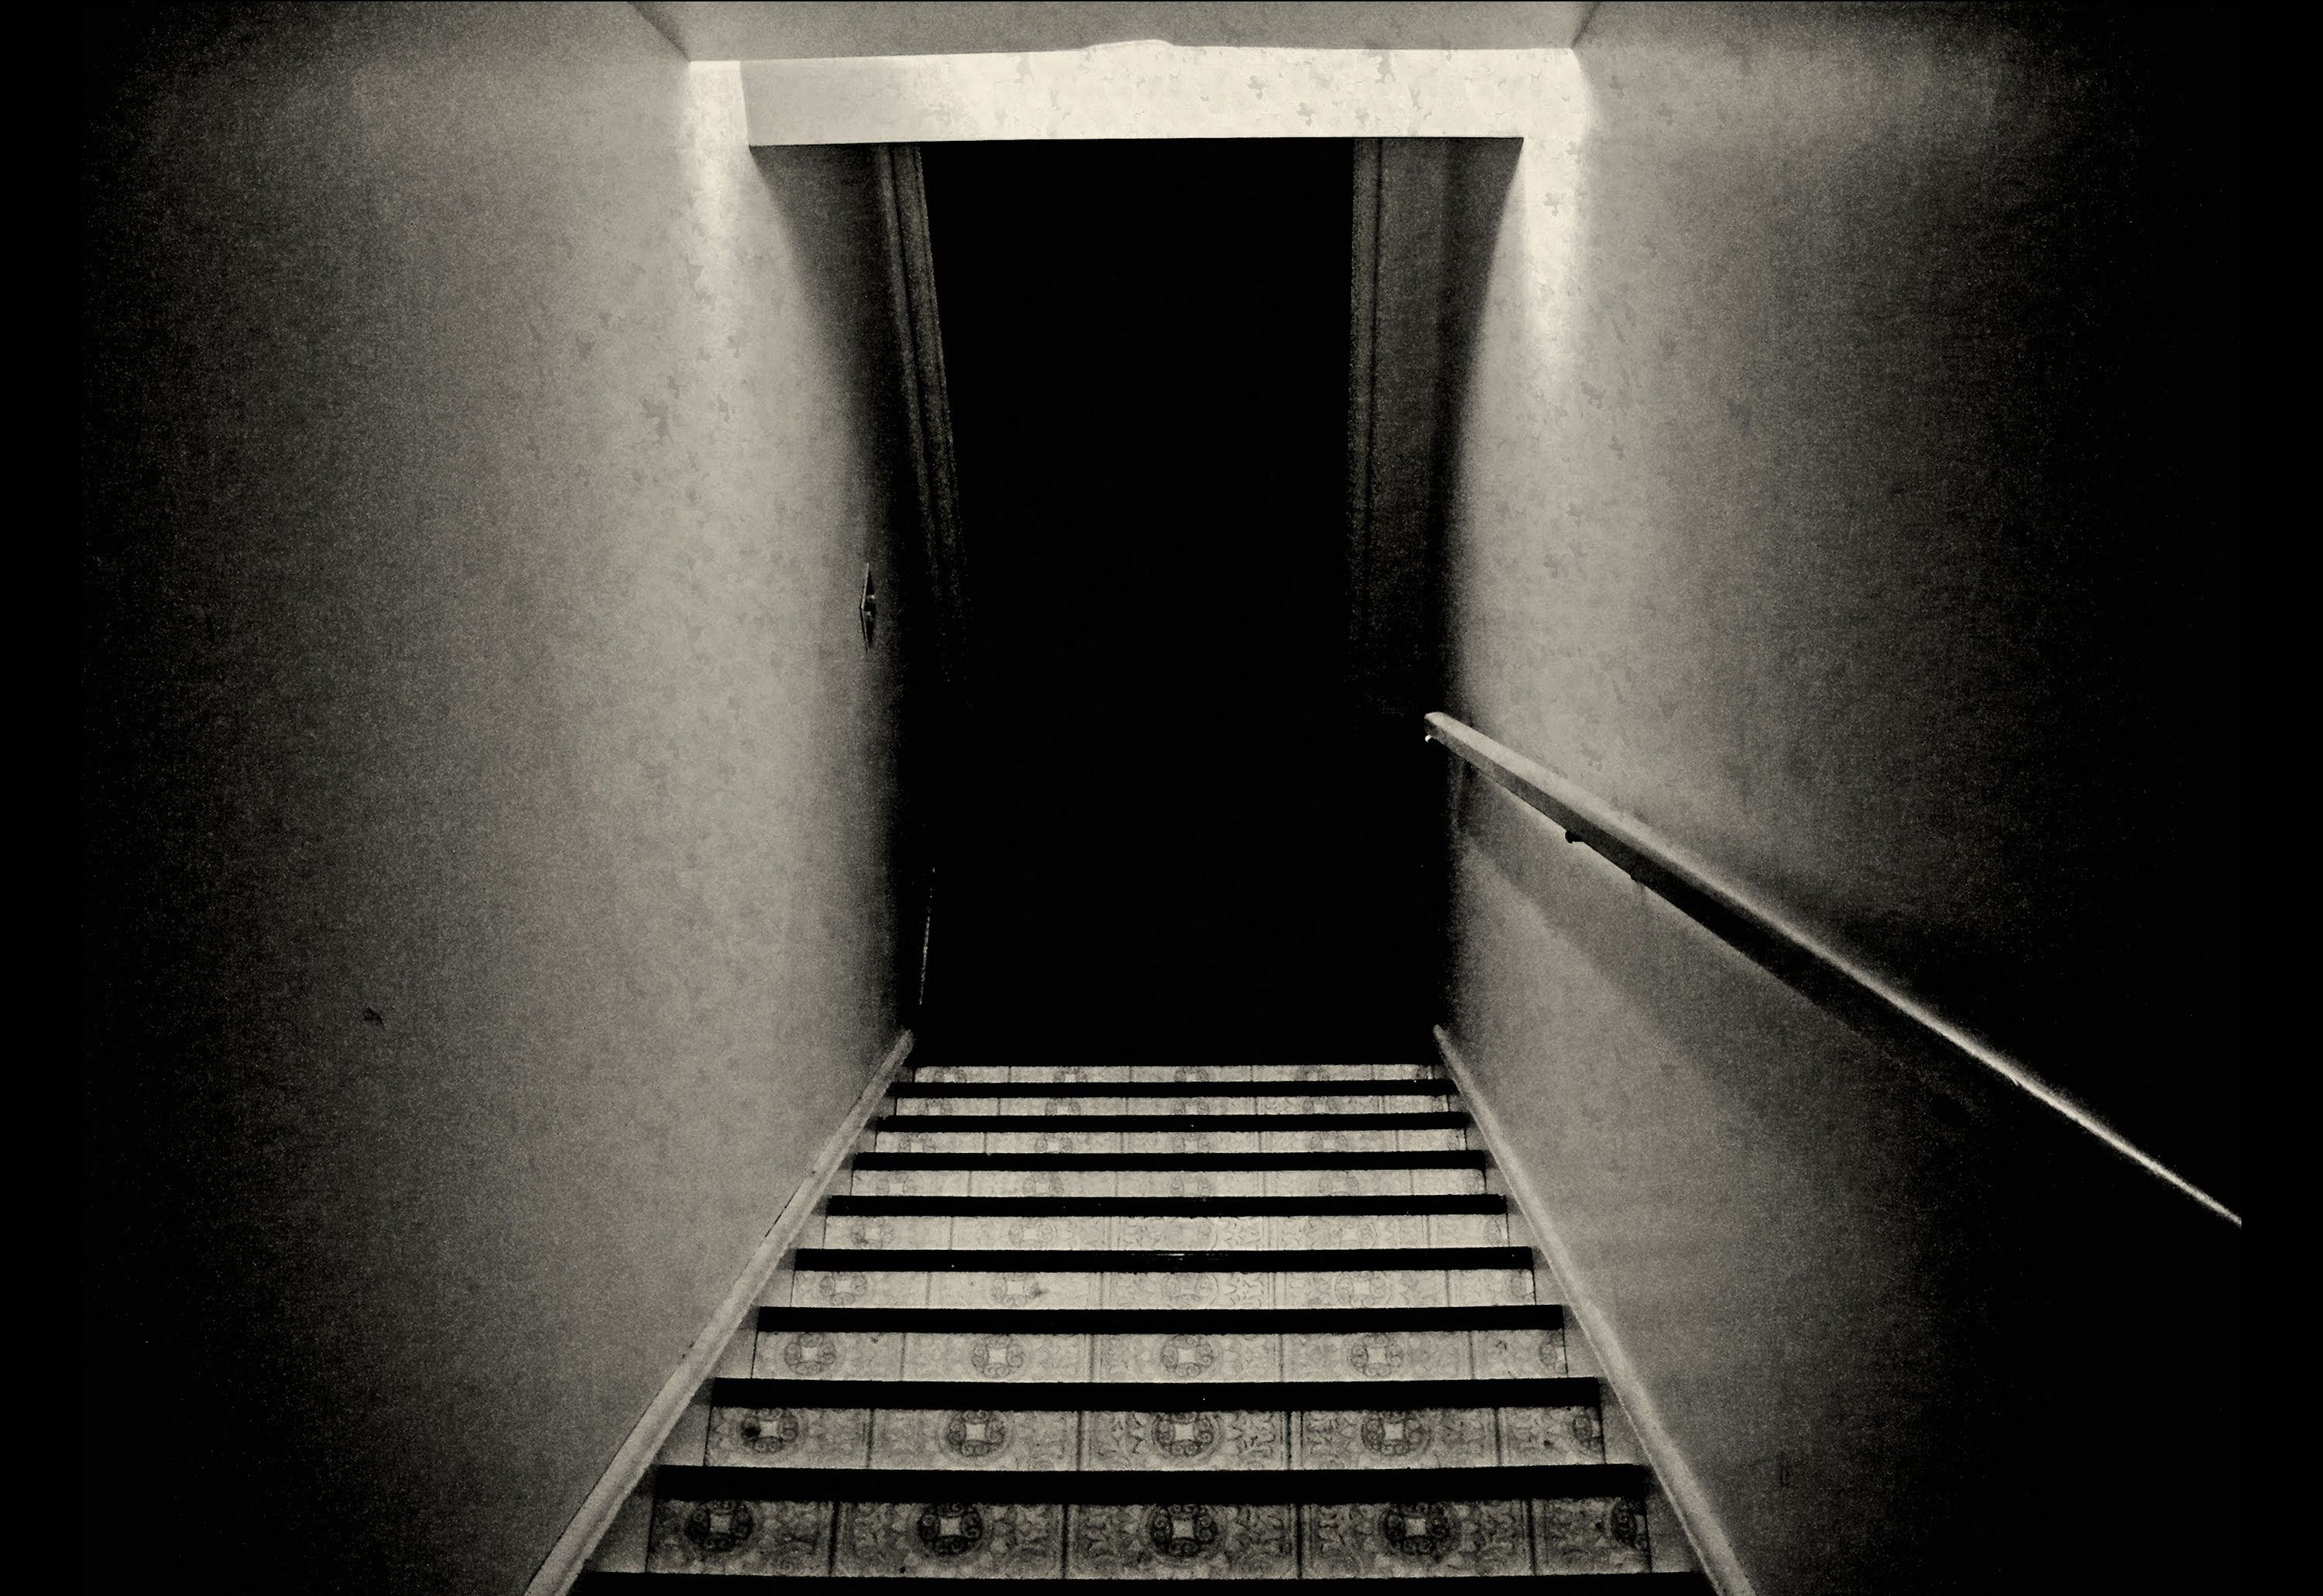 Quoti39m Coming Up The Stairsquot Creepypasta Short Scary Story